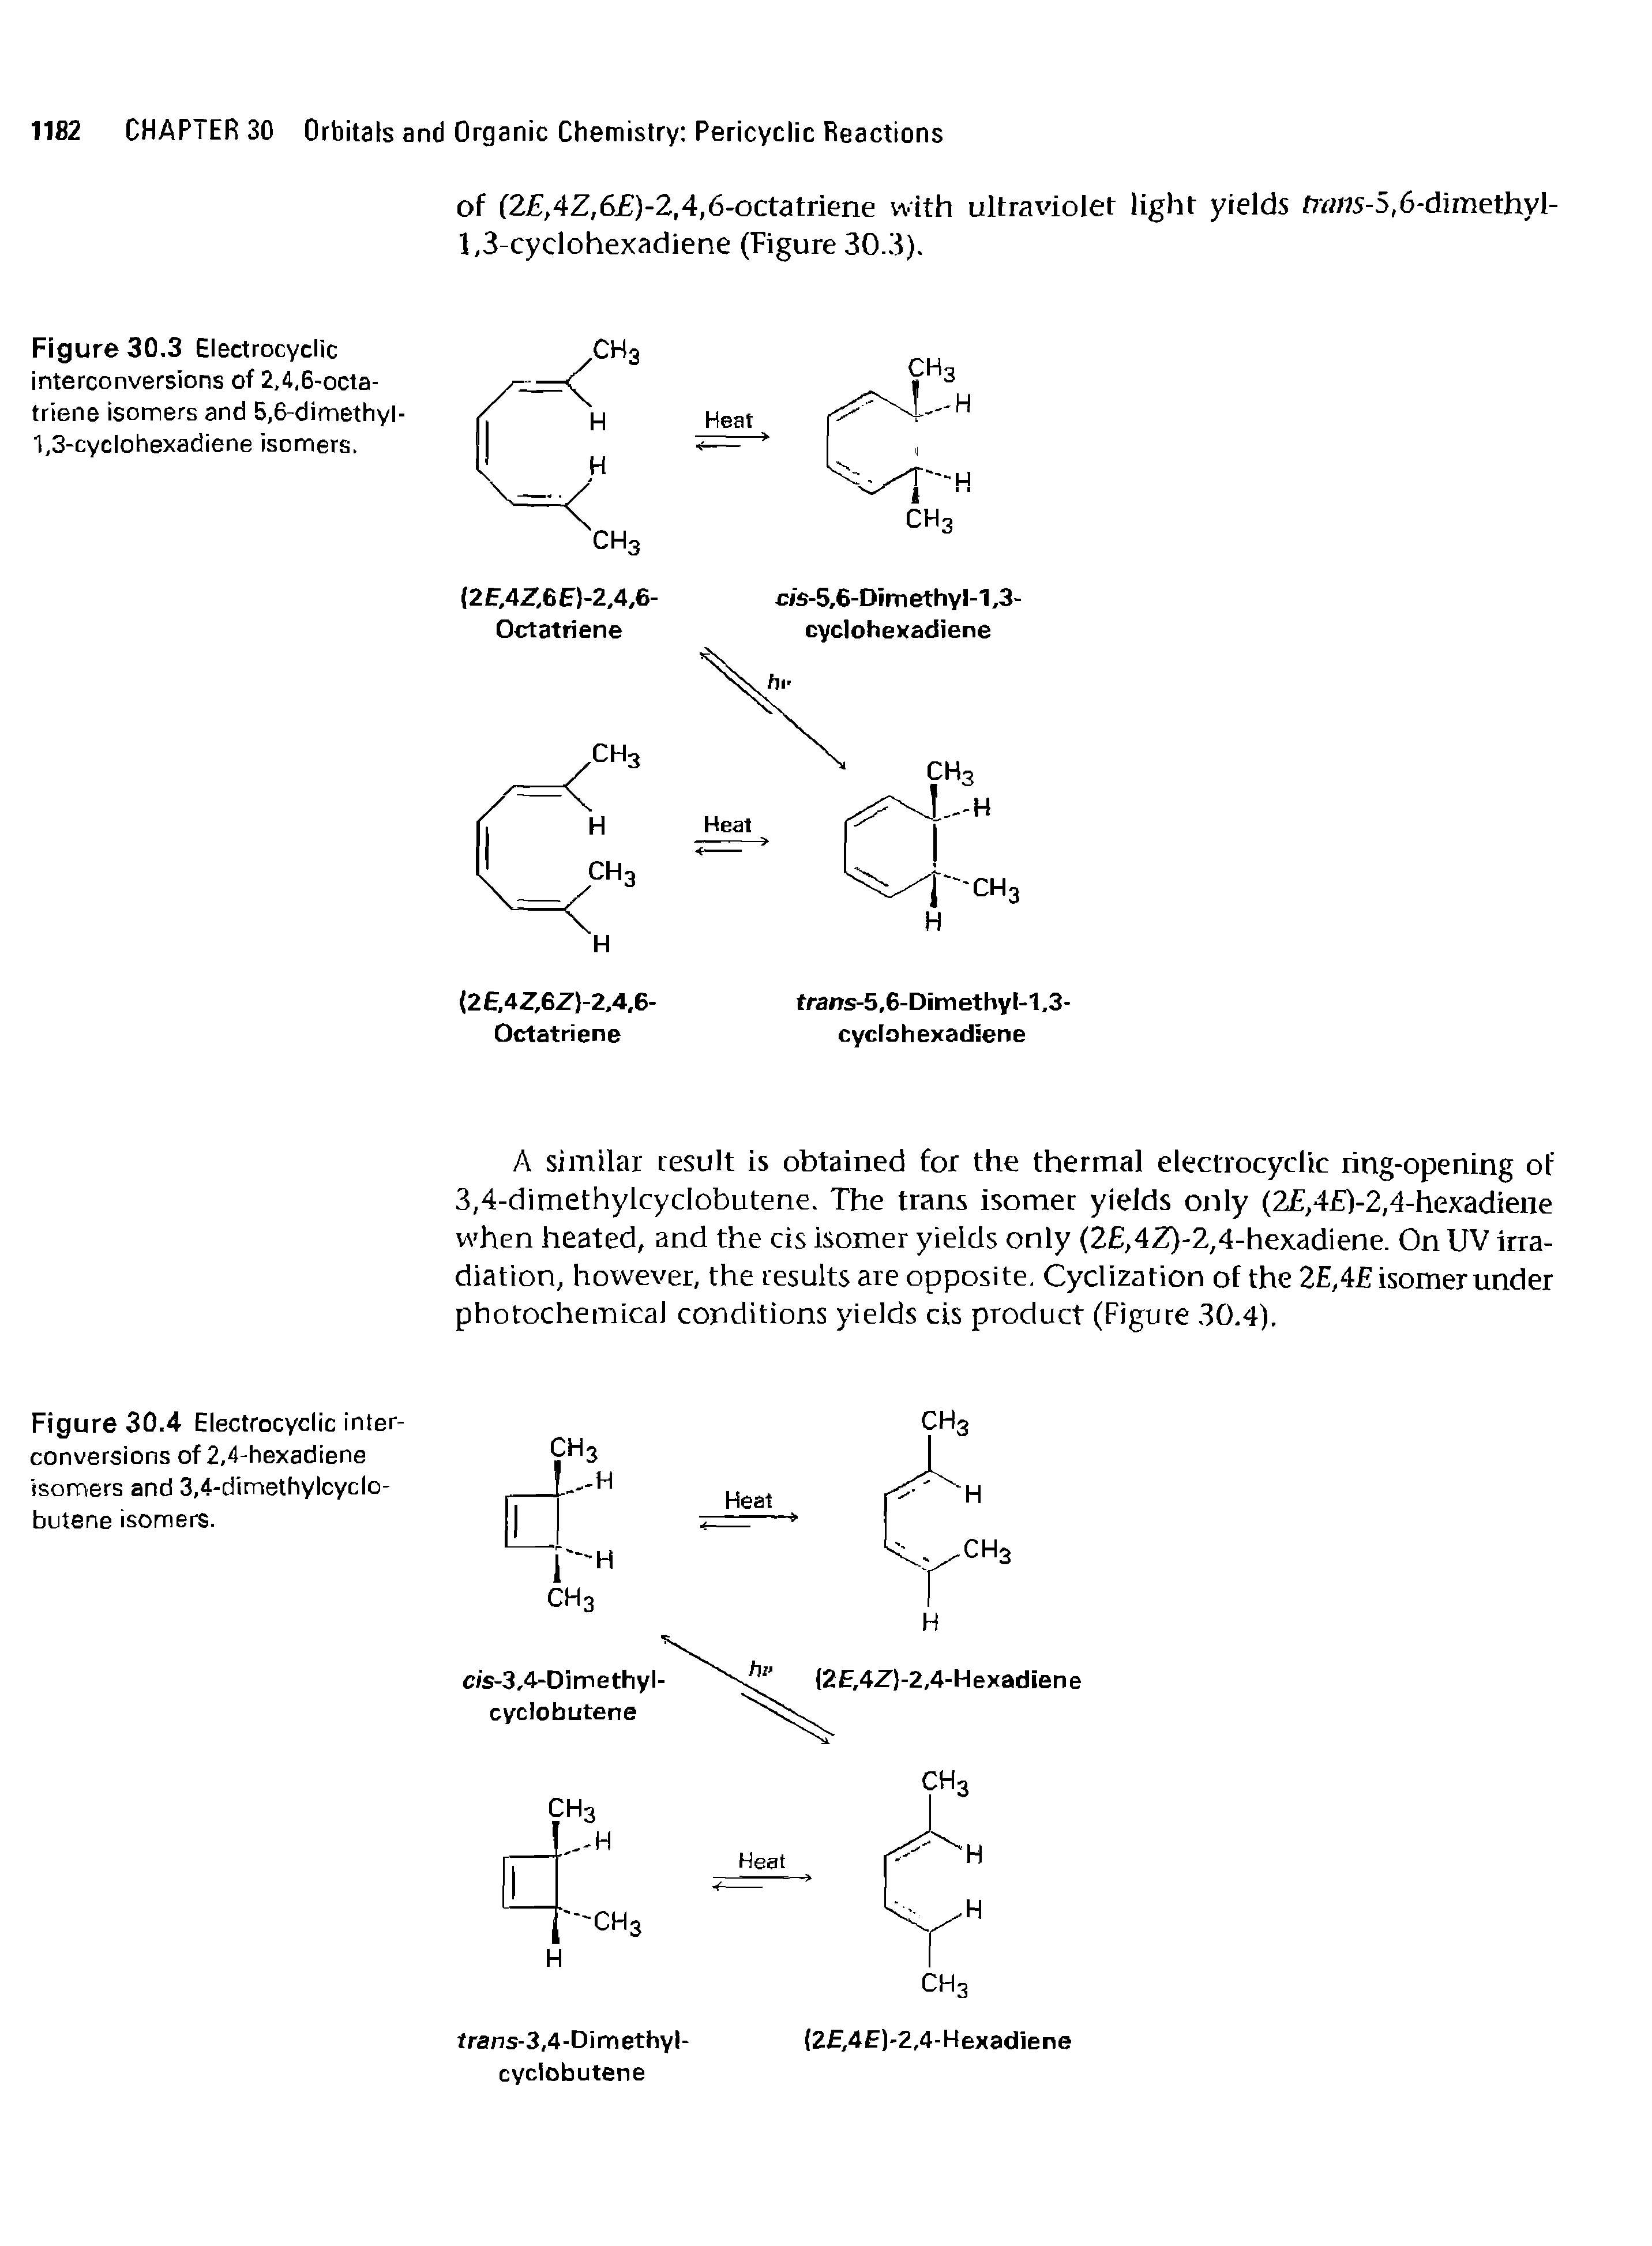 Figure 30.3 Electrocyclic interconversions of 2,4,6-octa-triene isomers and 5,6-dimethyi-1,3-cyclohexadiene isomers.